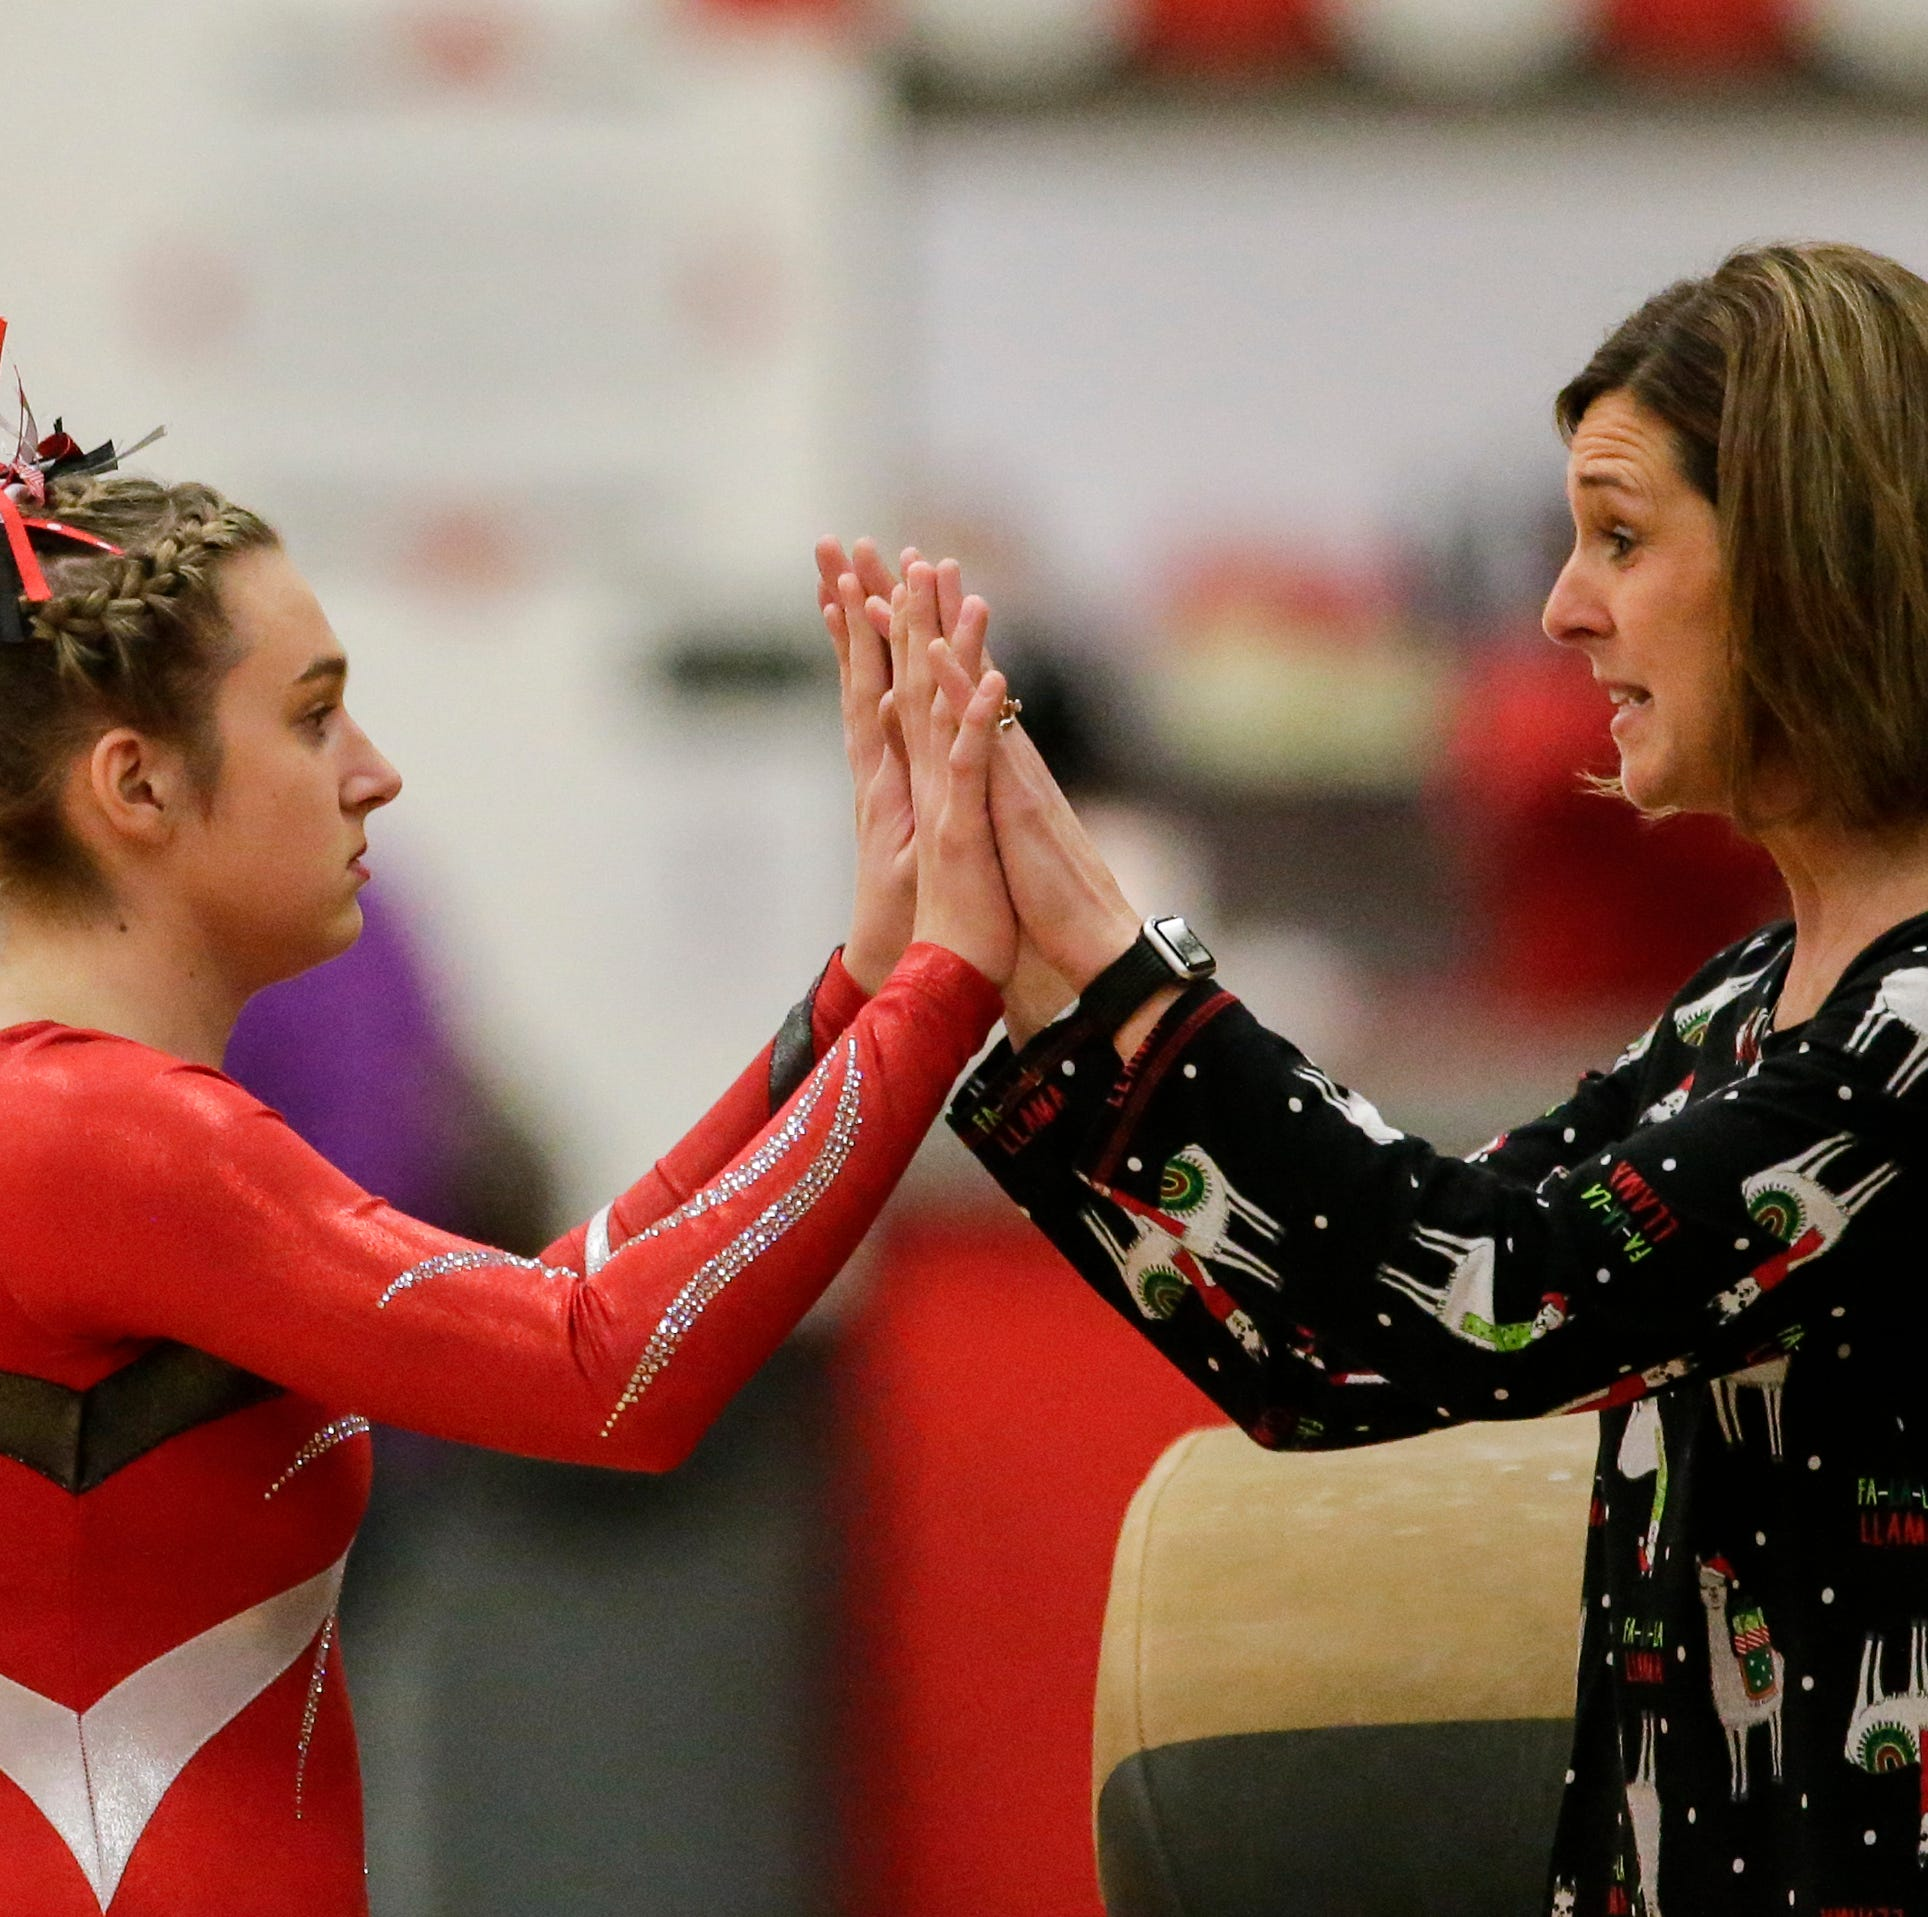 Restriction on gymnastics co-ops changes face of WIAA sport